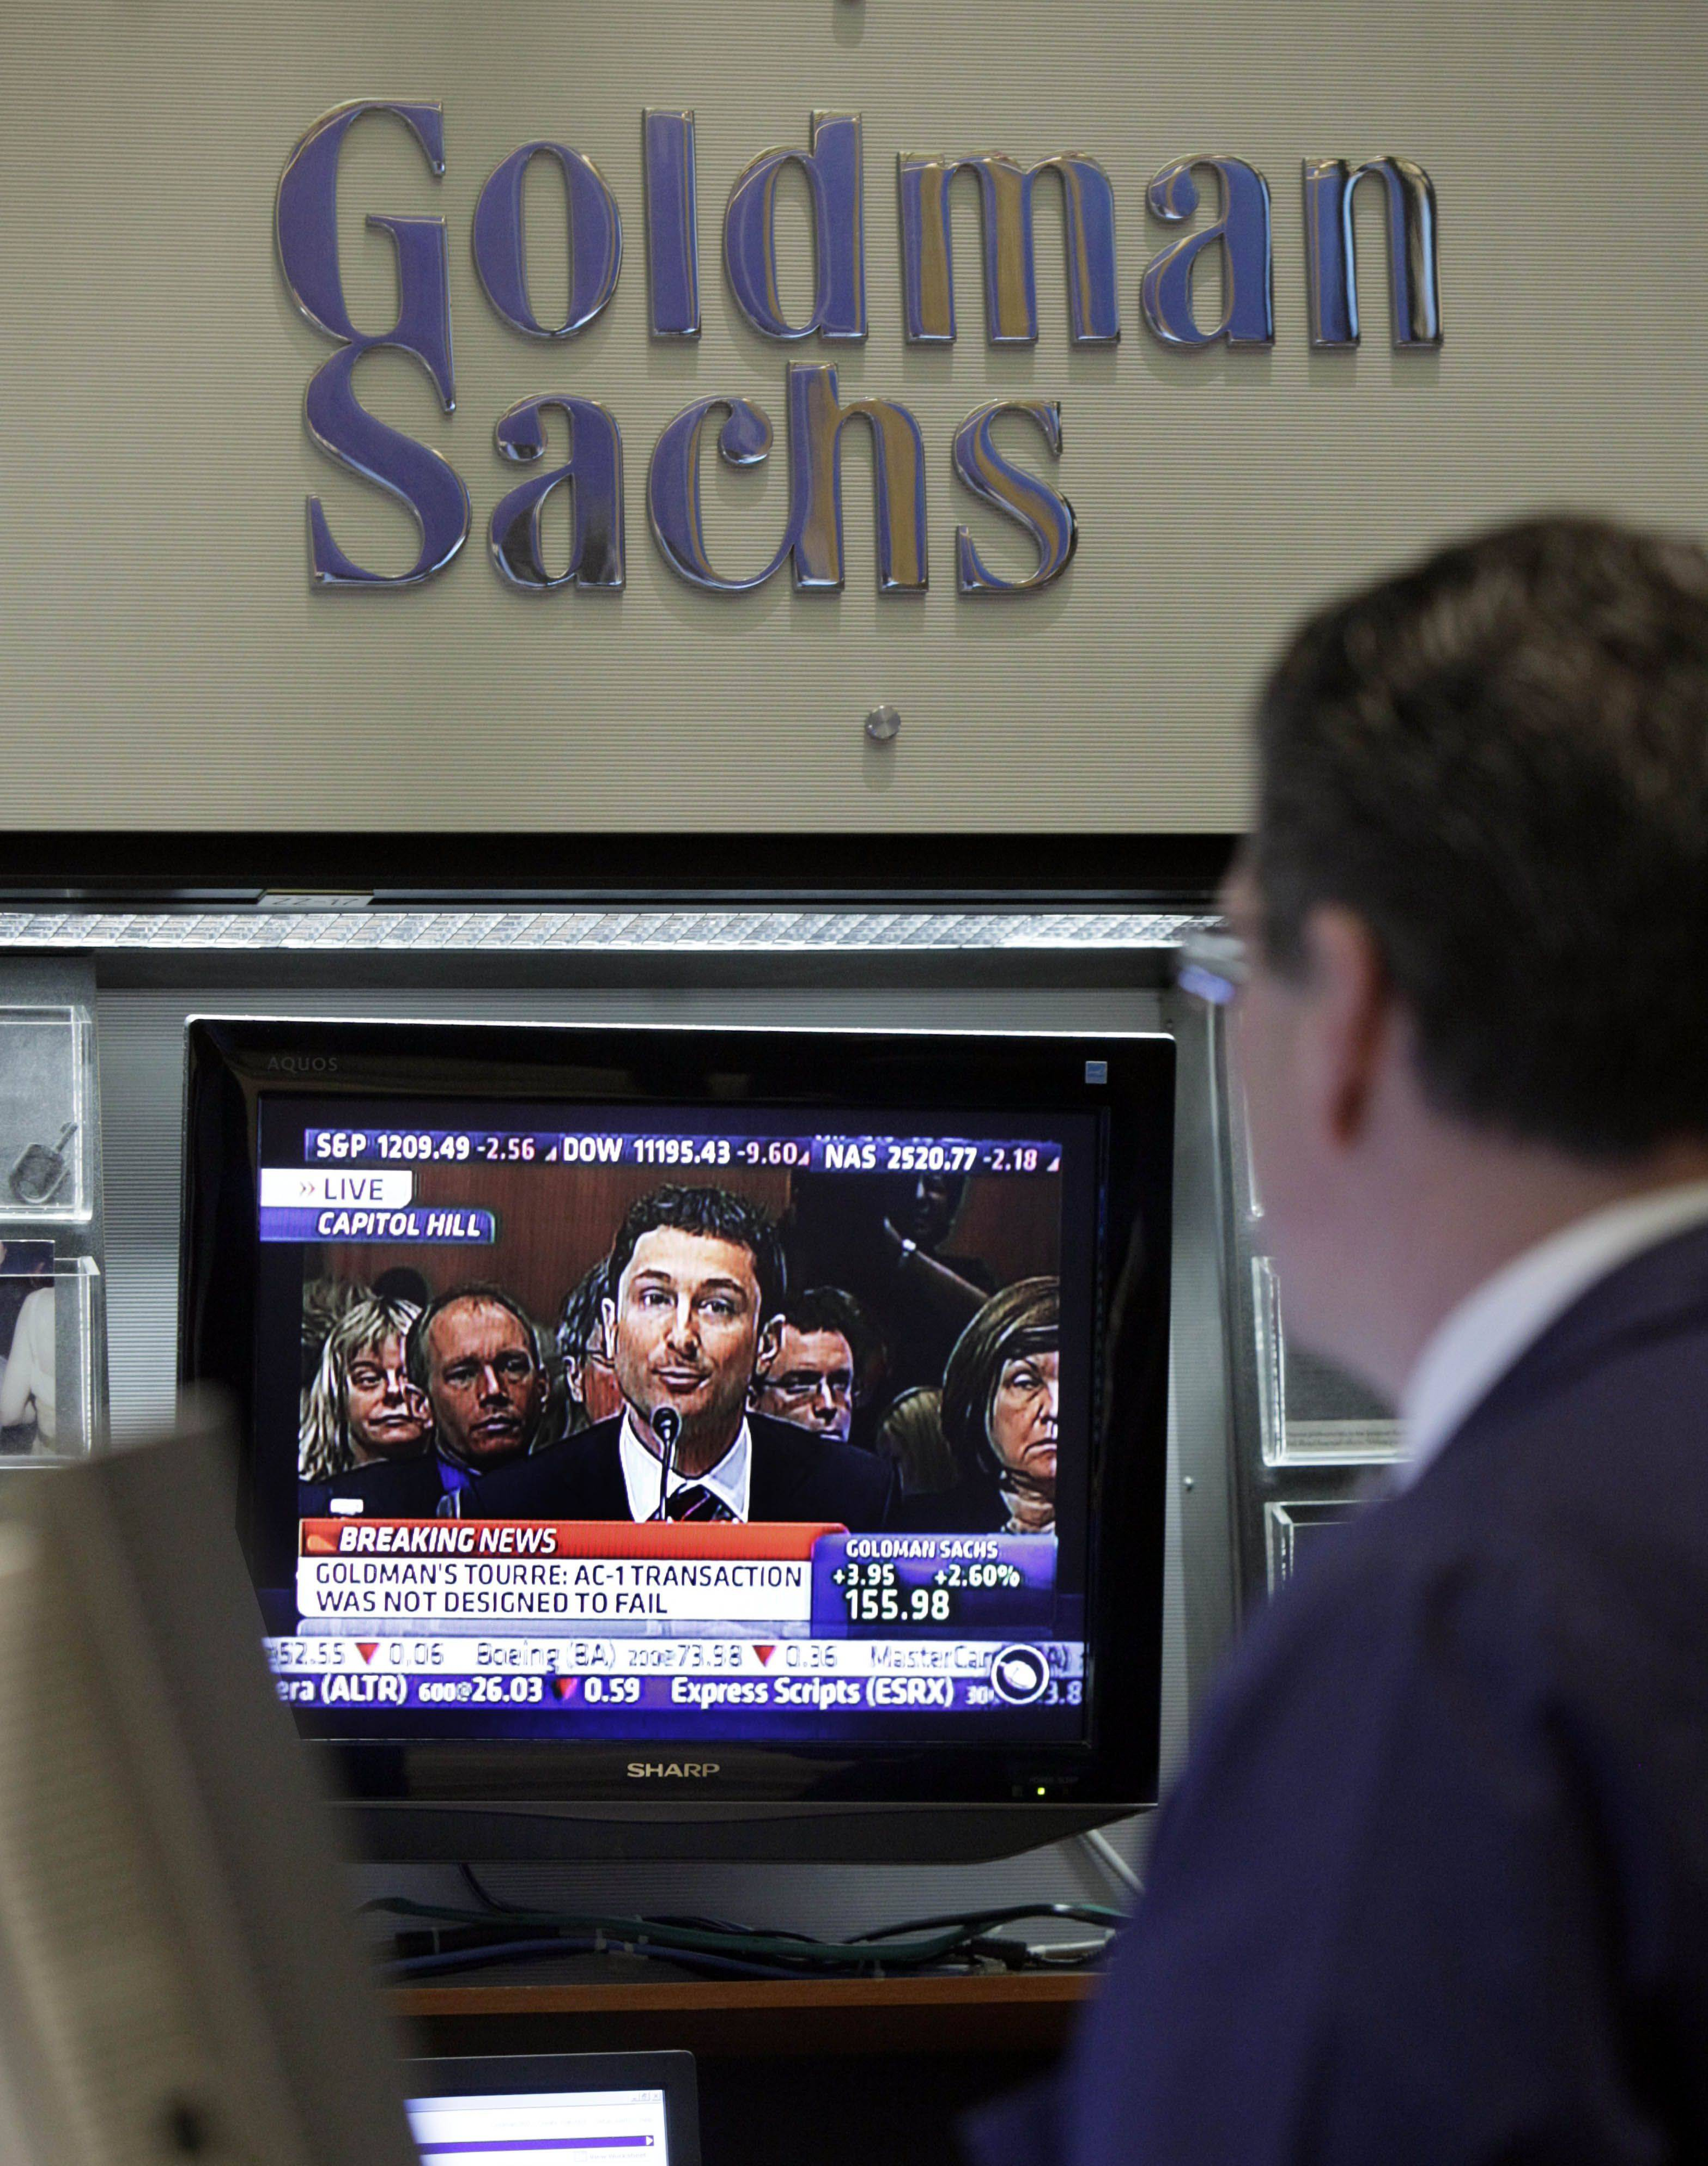 Goldman Sachs, in a settlement with a New York state banking regulator on Thursday, agreed to stop controversial mortgage-related practices such as the �robo-signing� of documents.